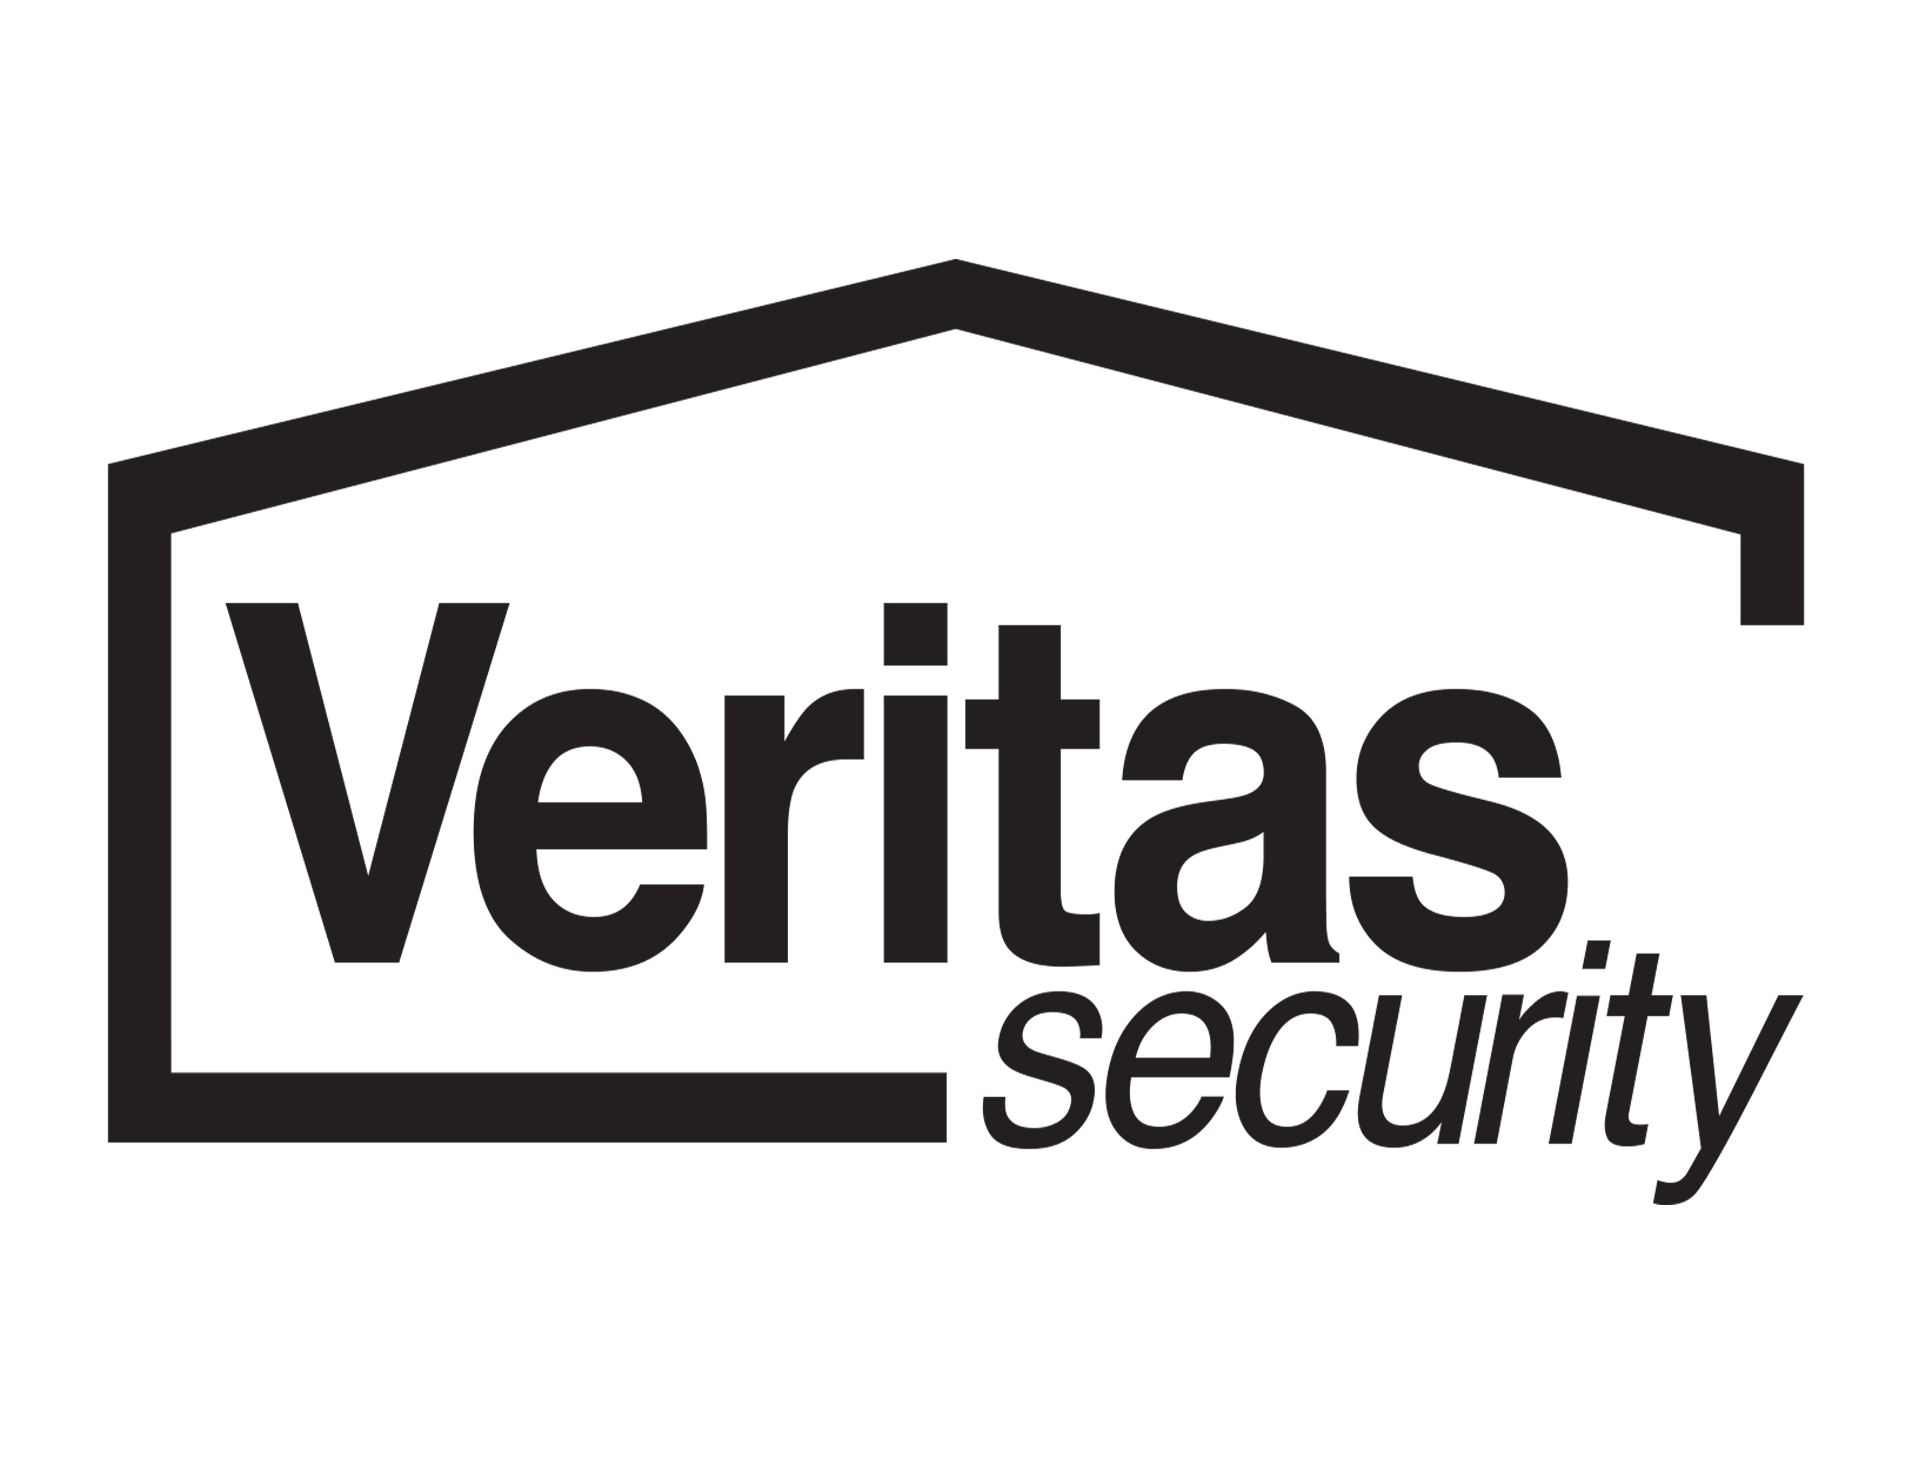 Veritas Security